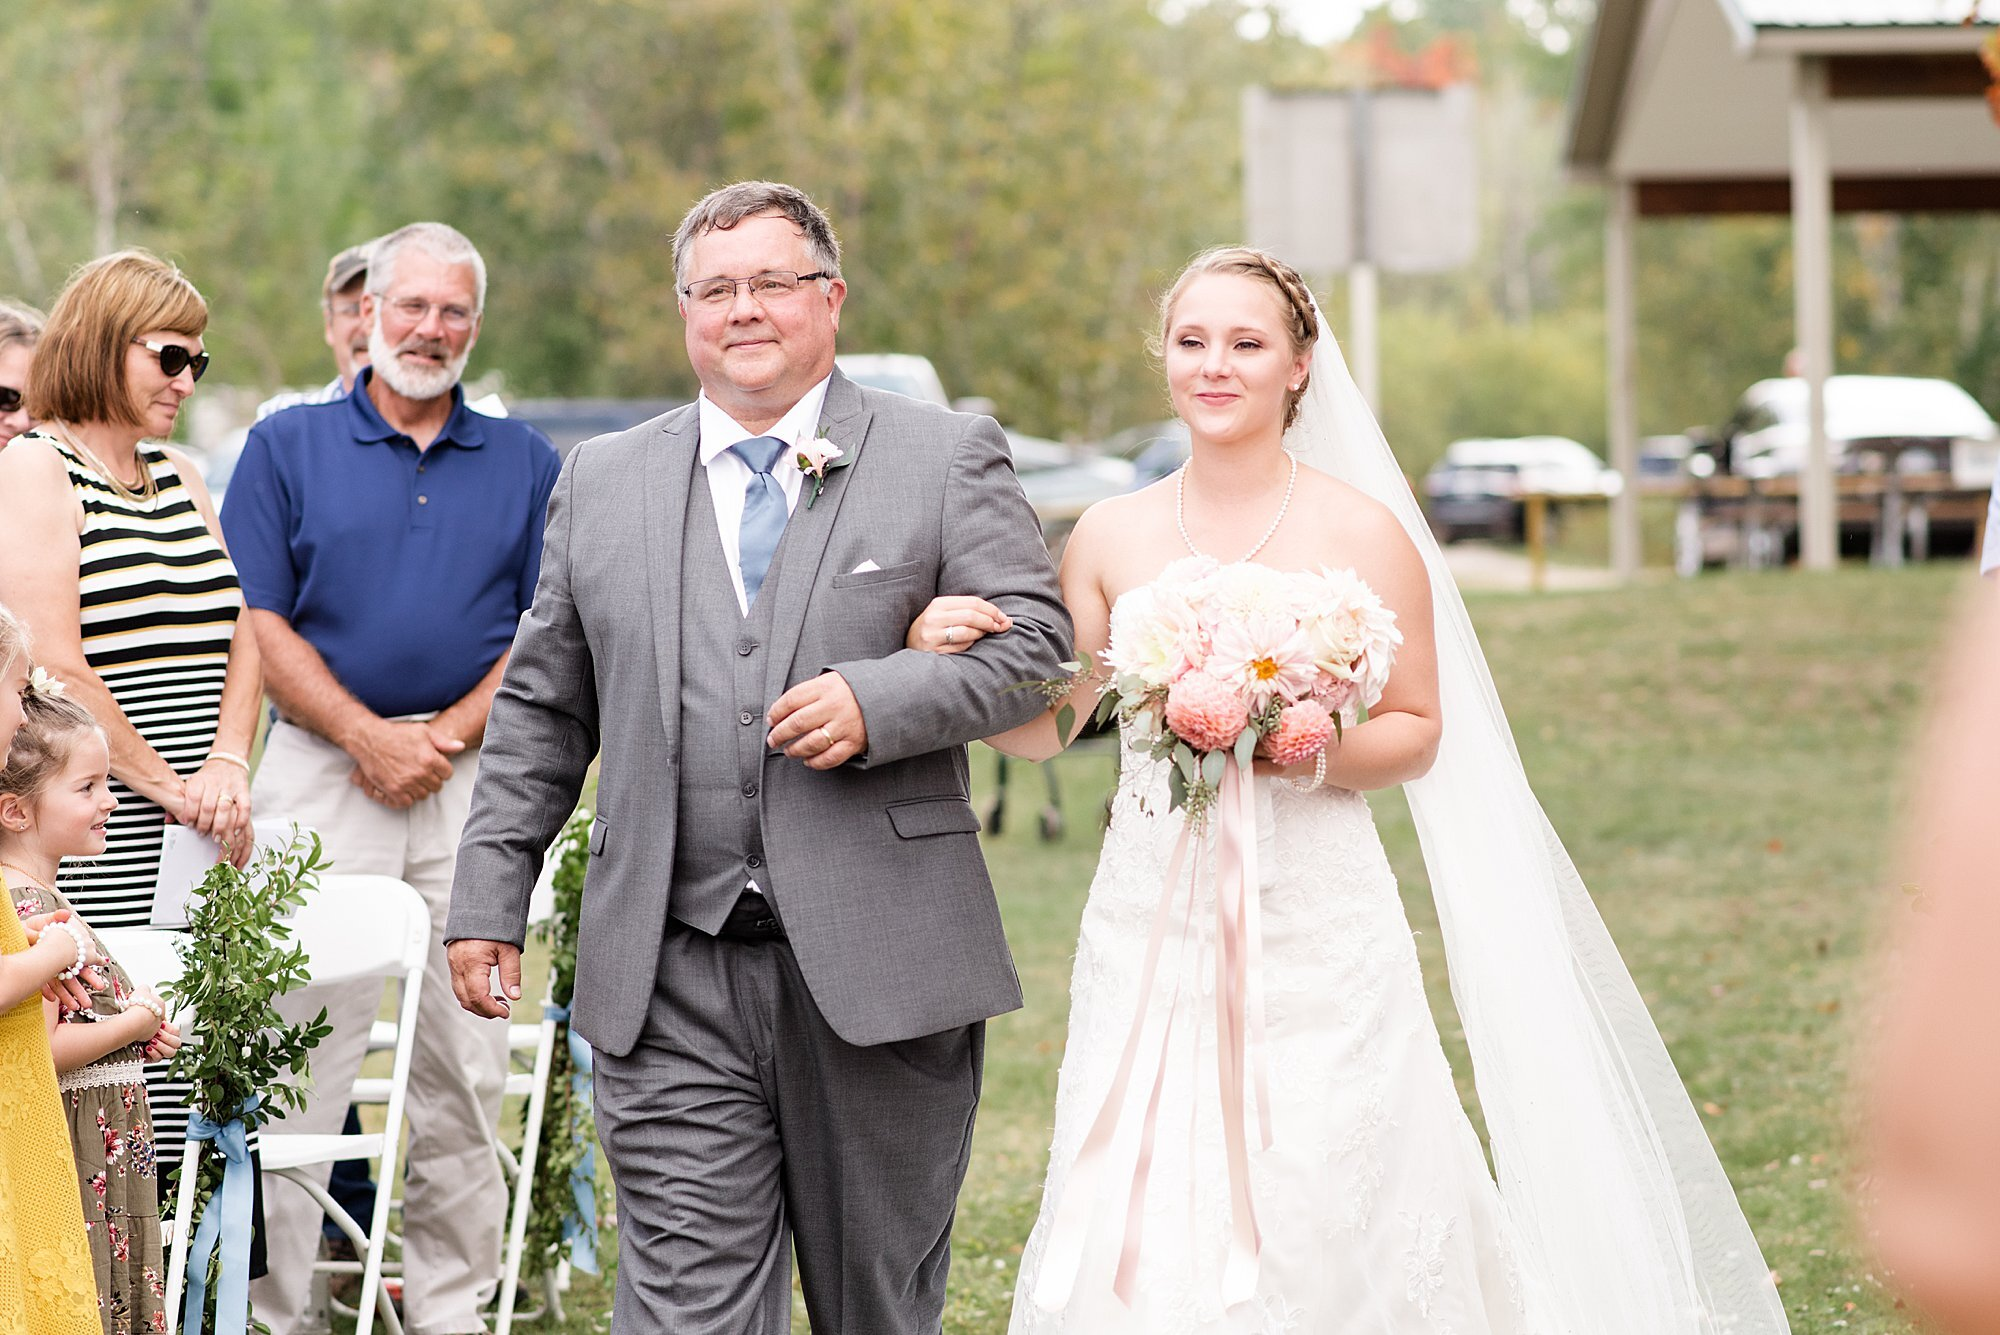 emily-chance-hayes-michigan-wedding-photography_0067.jpg